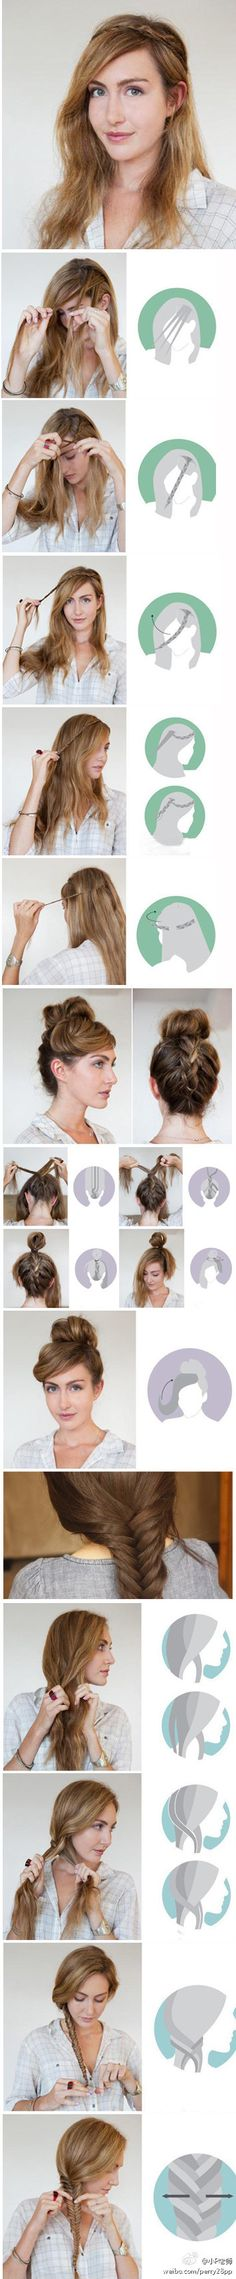 DIY Braided Hair Hairstyles-great tutorial   #tutorials #howto #hair #diy #hairstyles